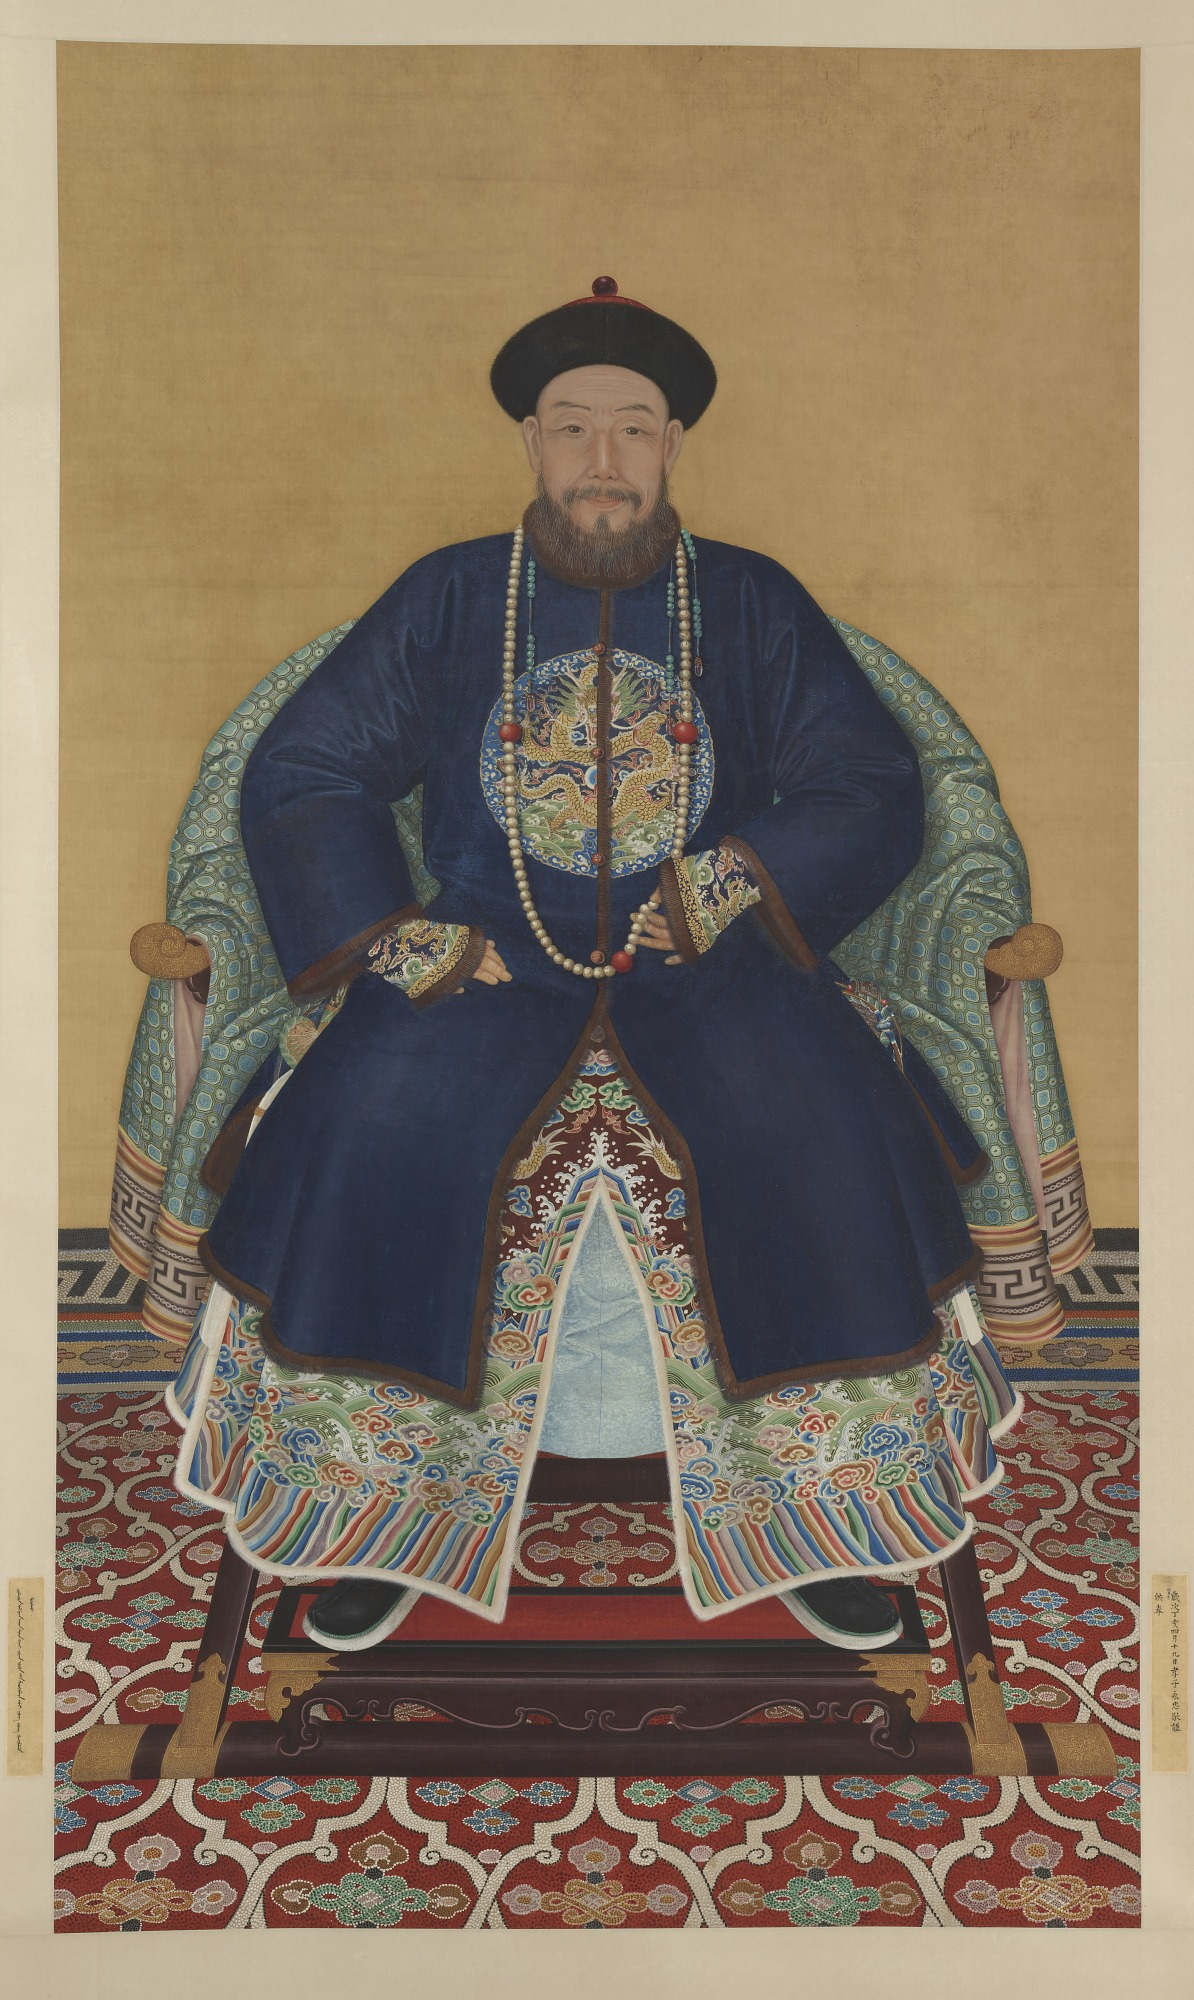 Ancestor portrait of Prince Hongming, dressed in a blue robe decorated with a dragon roundel on the chest, he wears a string of beads and holds a few beads between his fingers, he has a rounded beard and wears a black and red hat, seated on a light green patterned fabric draped chair, on a red and white patterned carpet